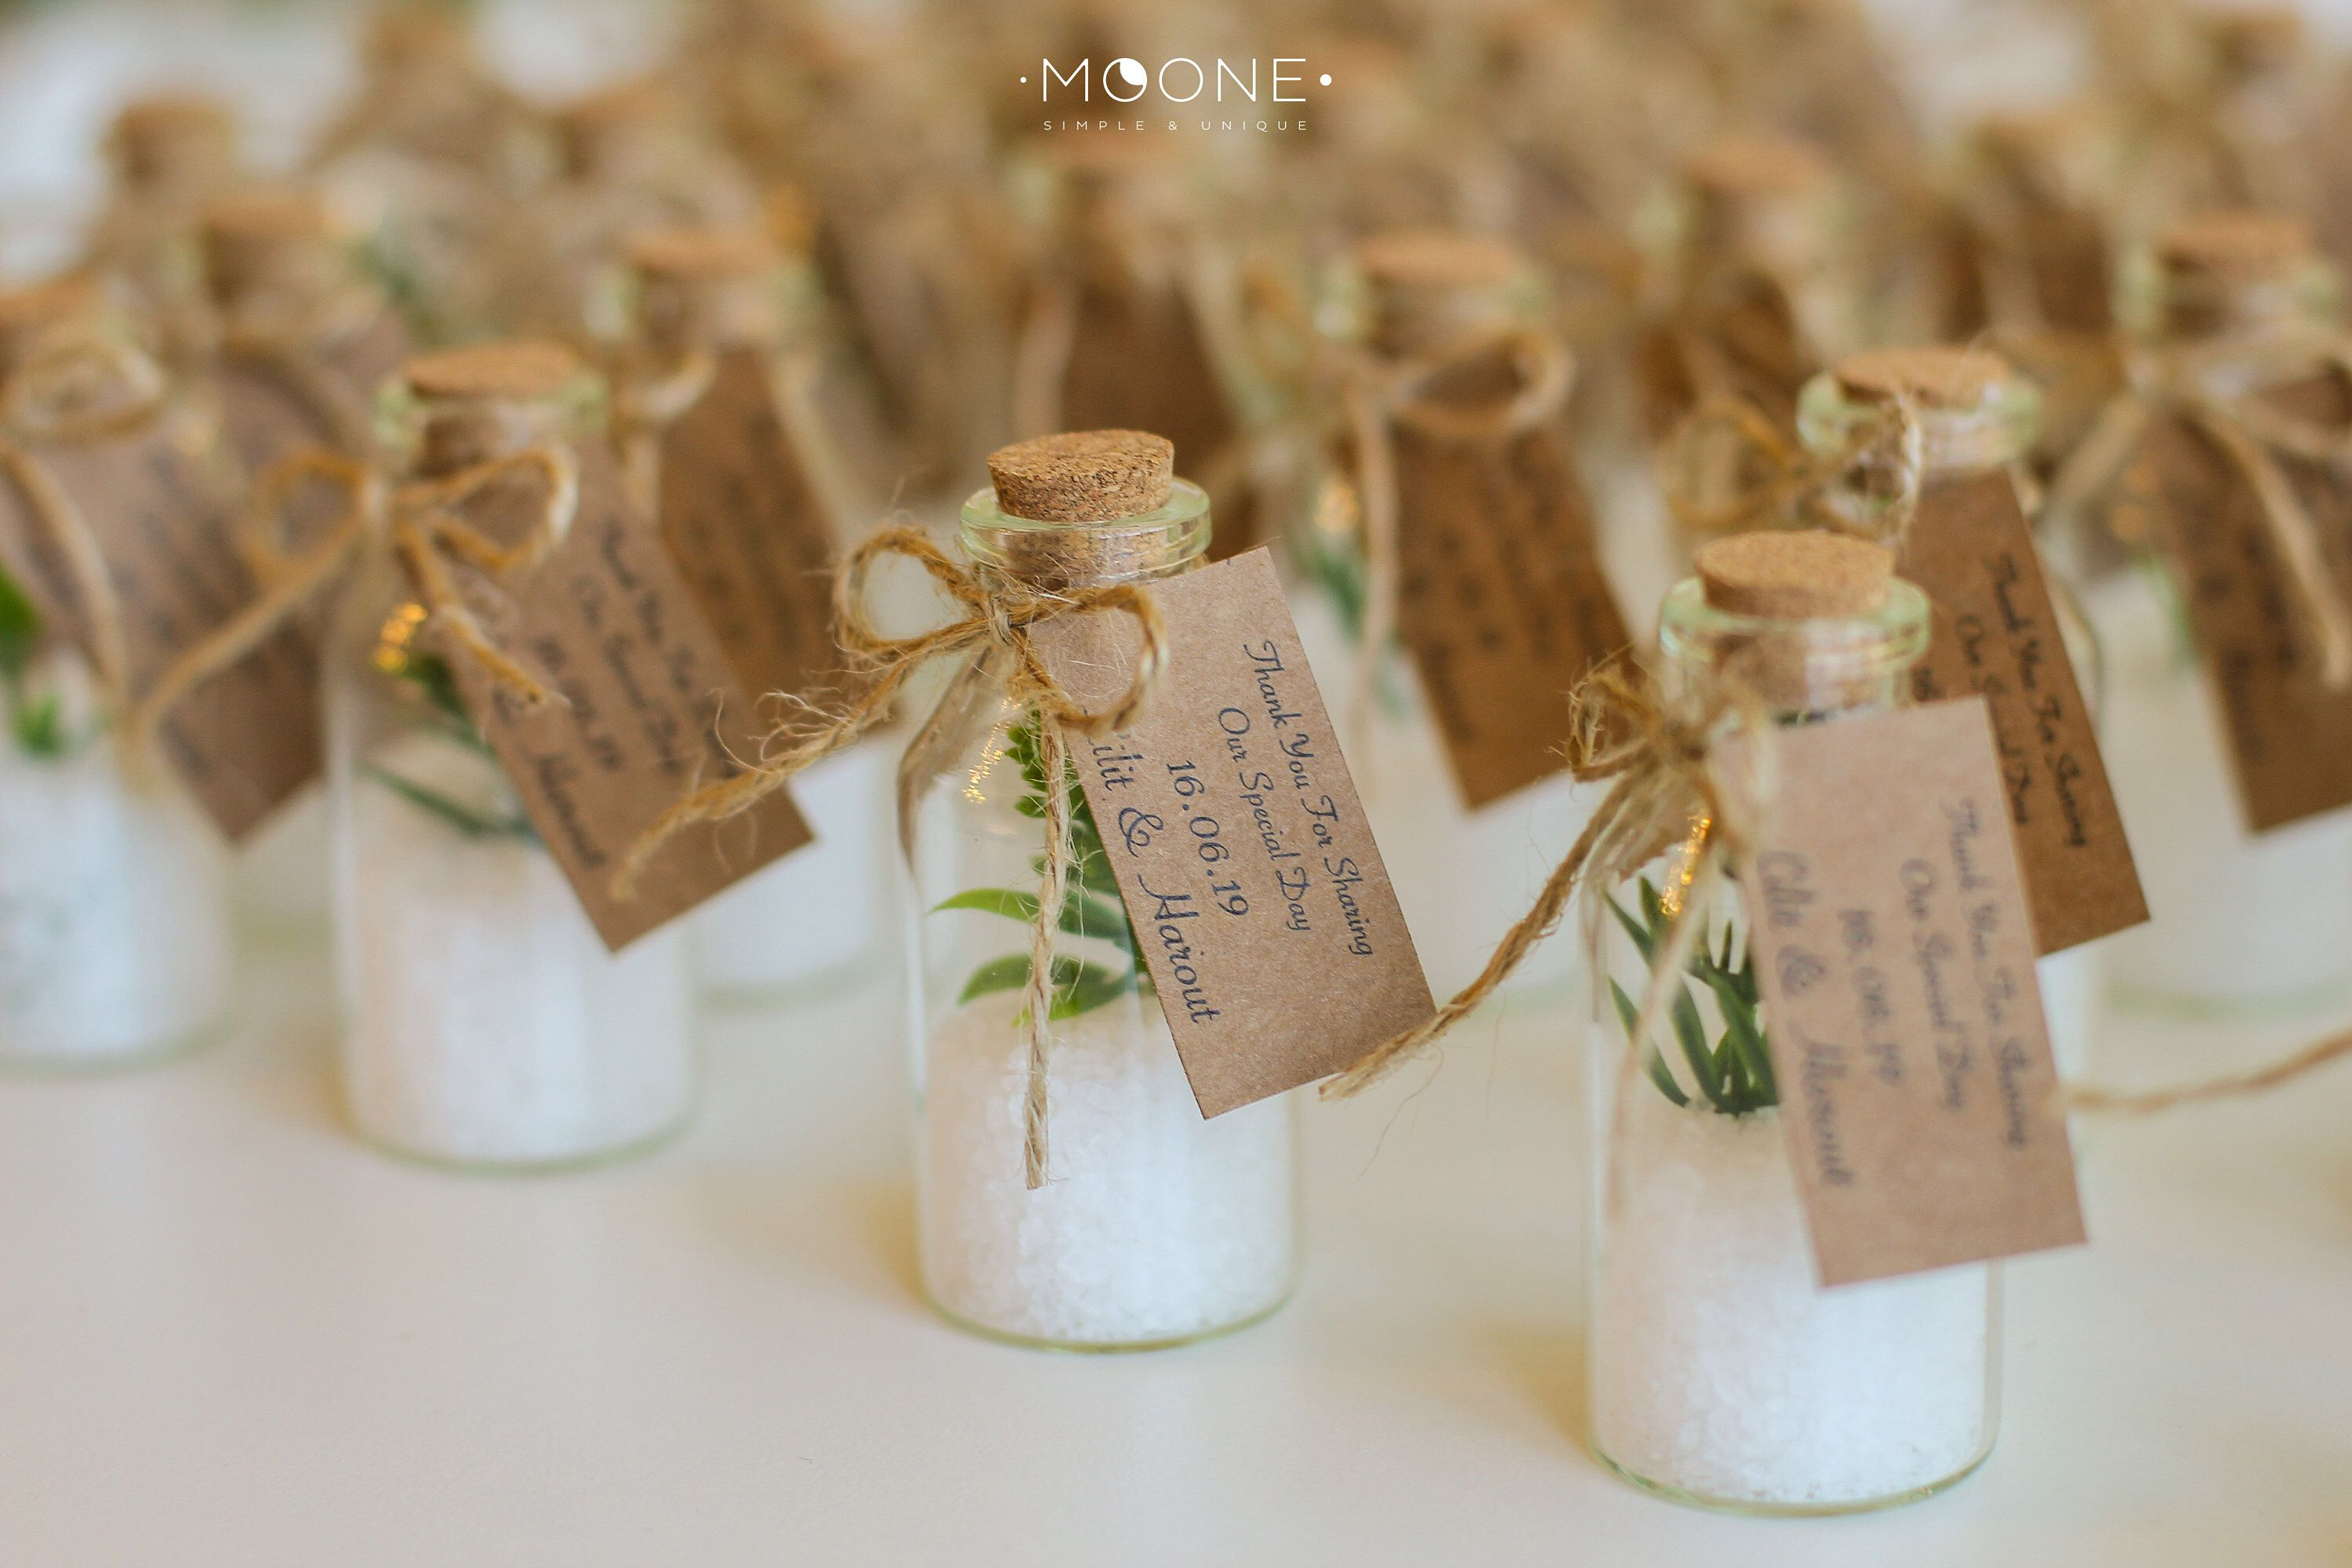 10 Sea Salt Wedding Gifts Beach Wedding Favors Beach Wedding Etsy Beach Wedding Gifts Wedding Gifts For Guests Wedding Gift Favors